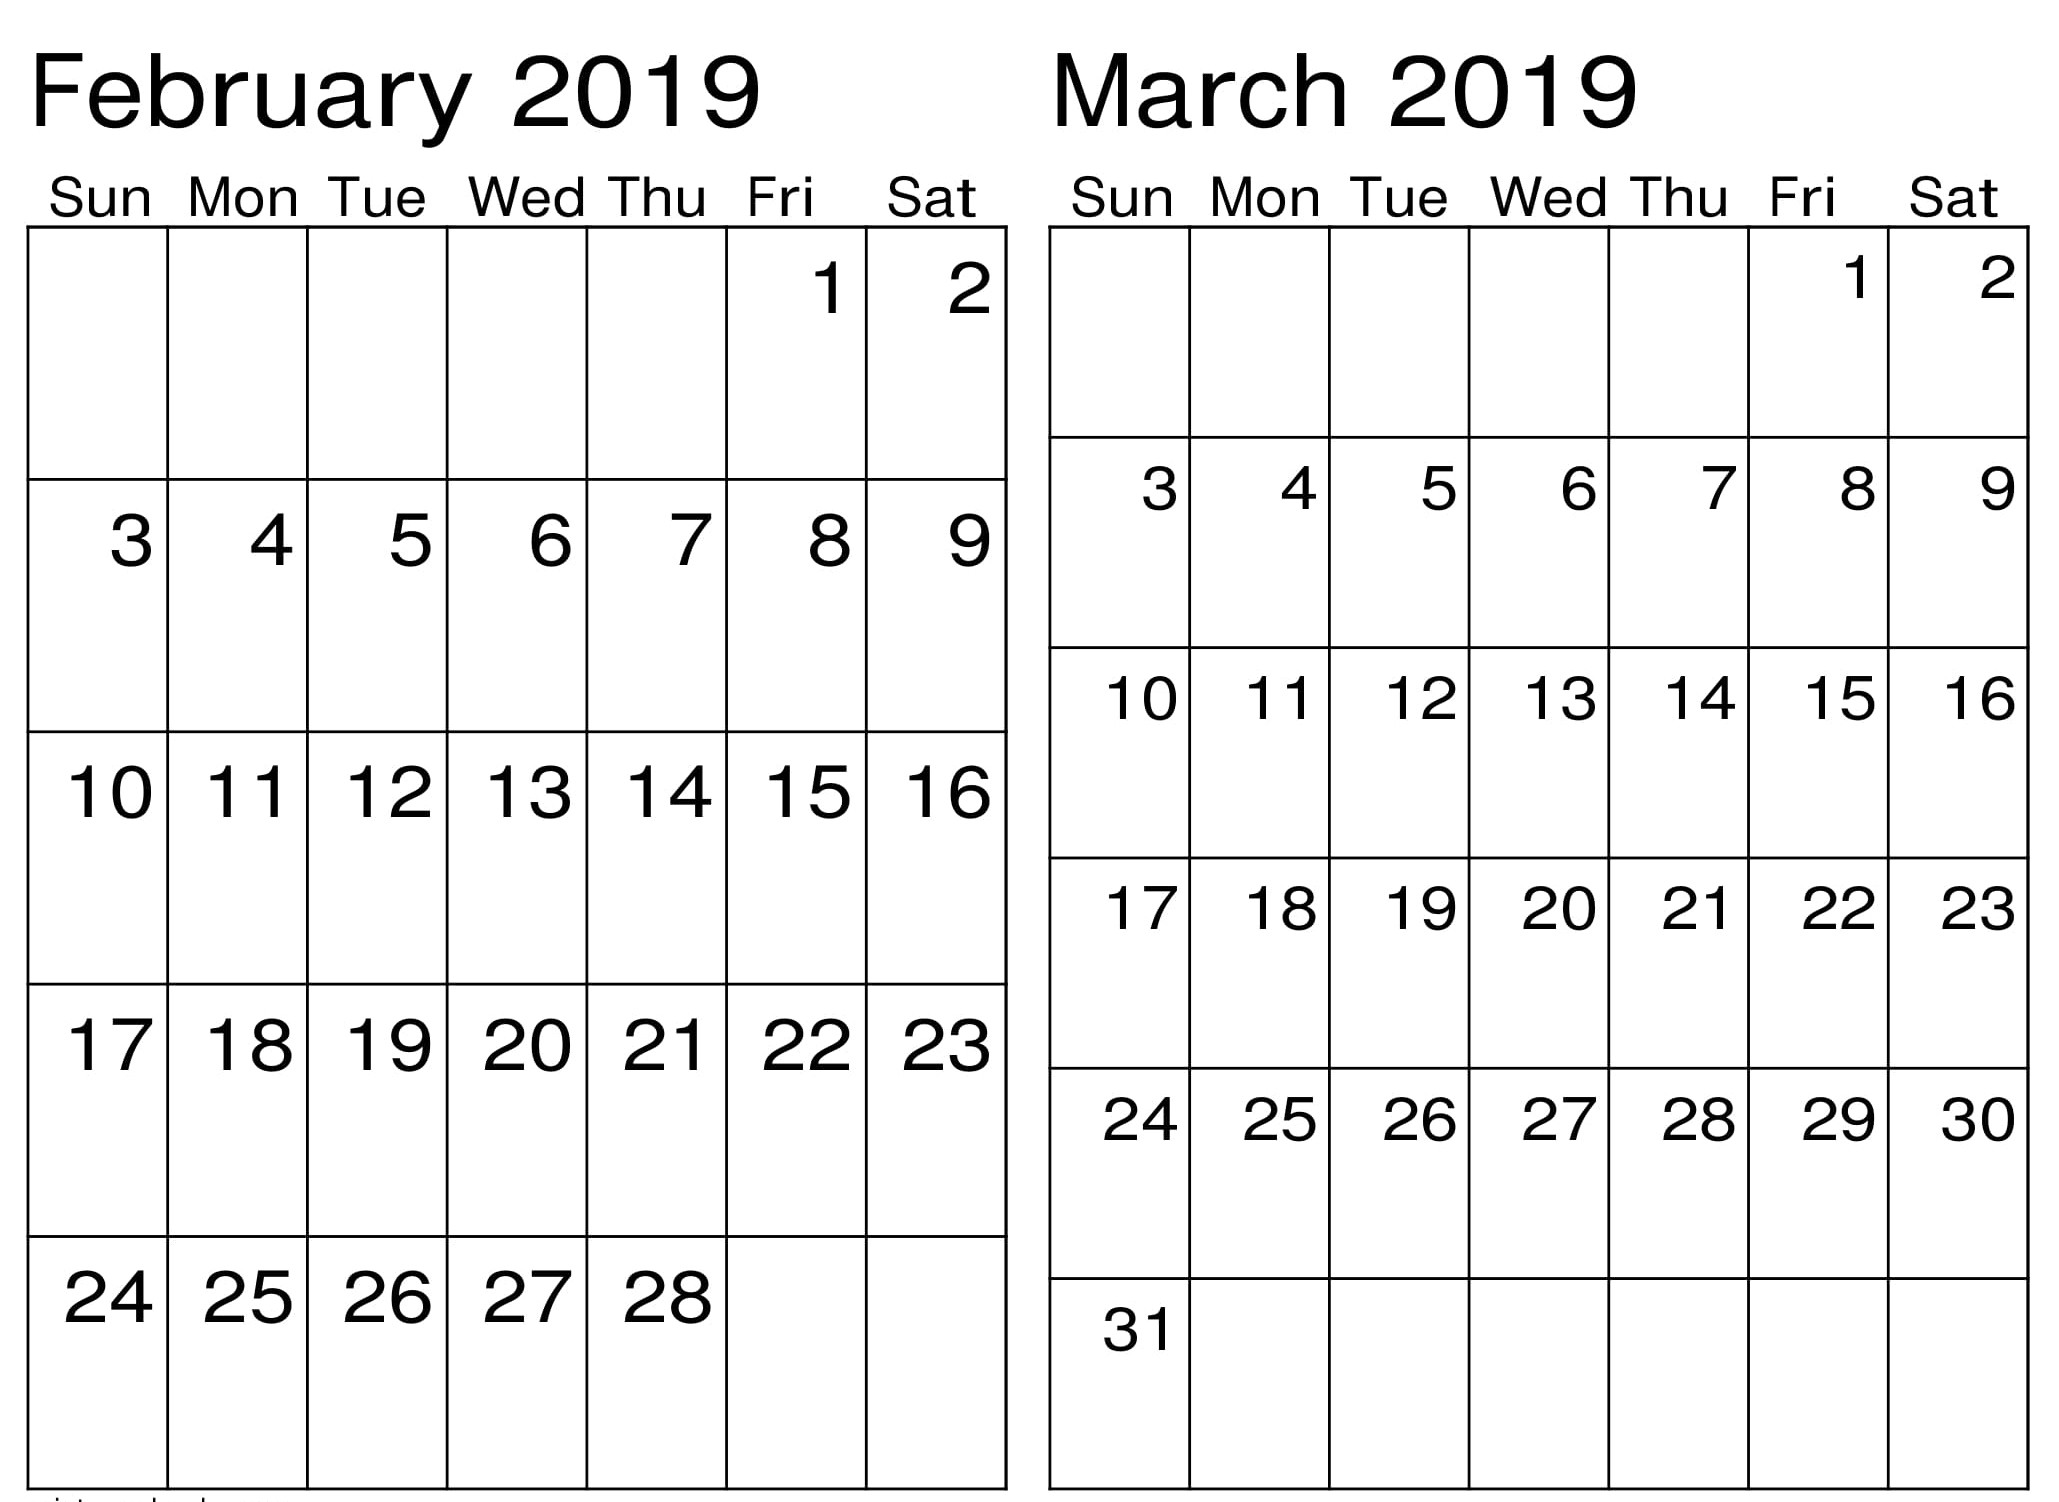 March Calendar 2019 Más Recientemente Liberado February March Calendar 2019 – Free Calendar Templates & Worksheets Of March Calendar 2019 Más Populares March 2019 Calendar Pdf Word Excel